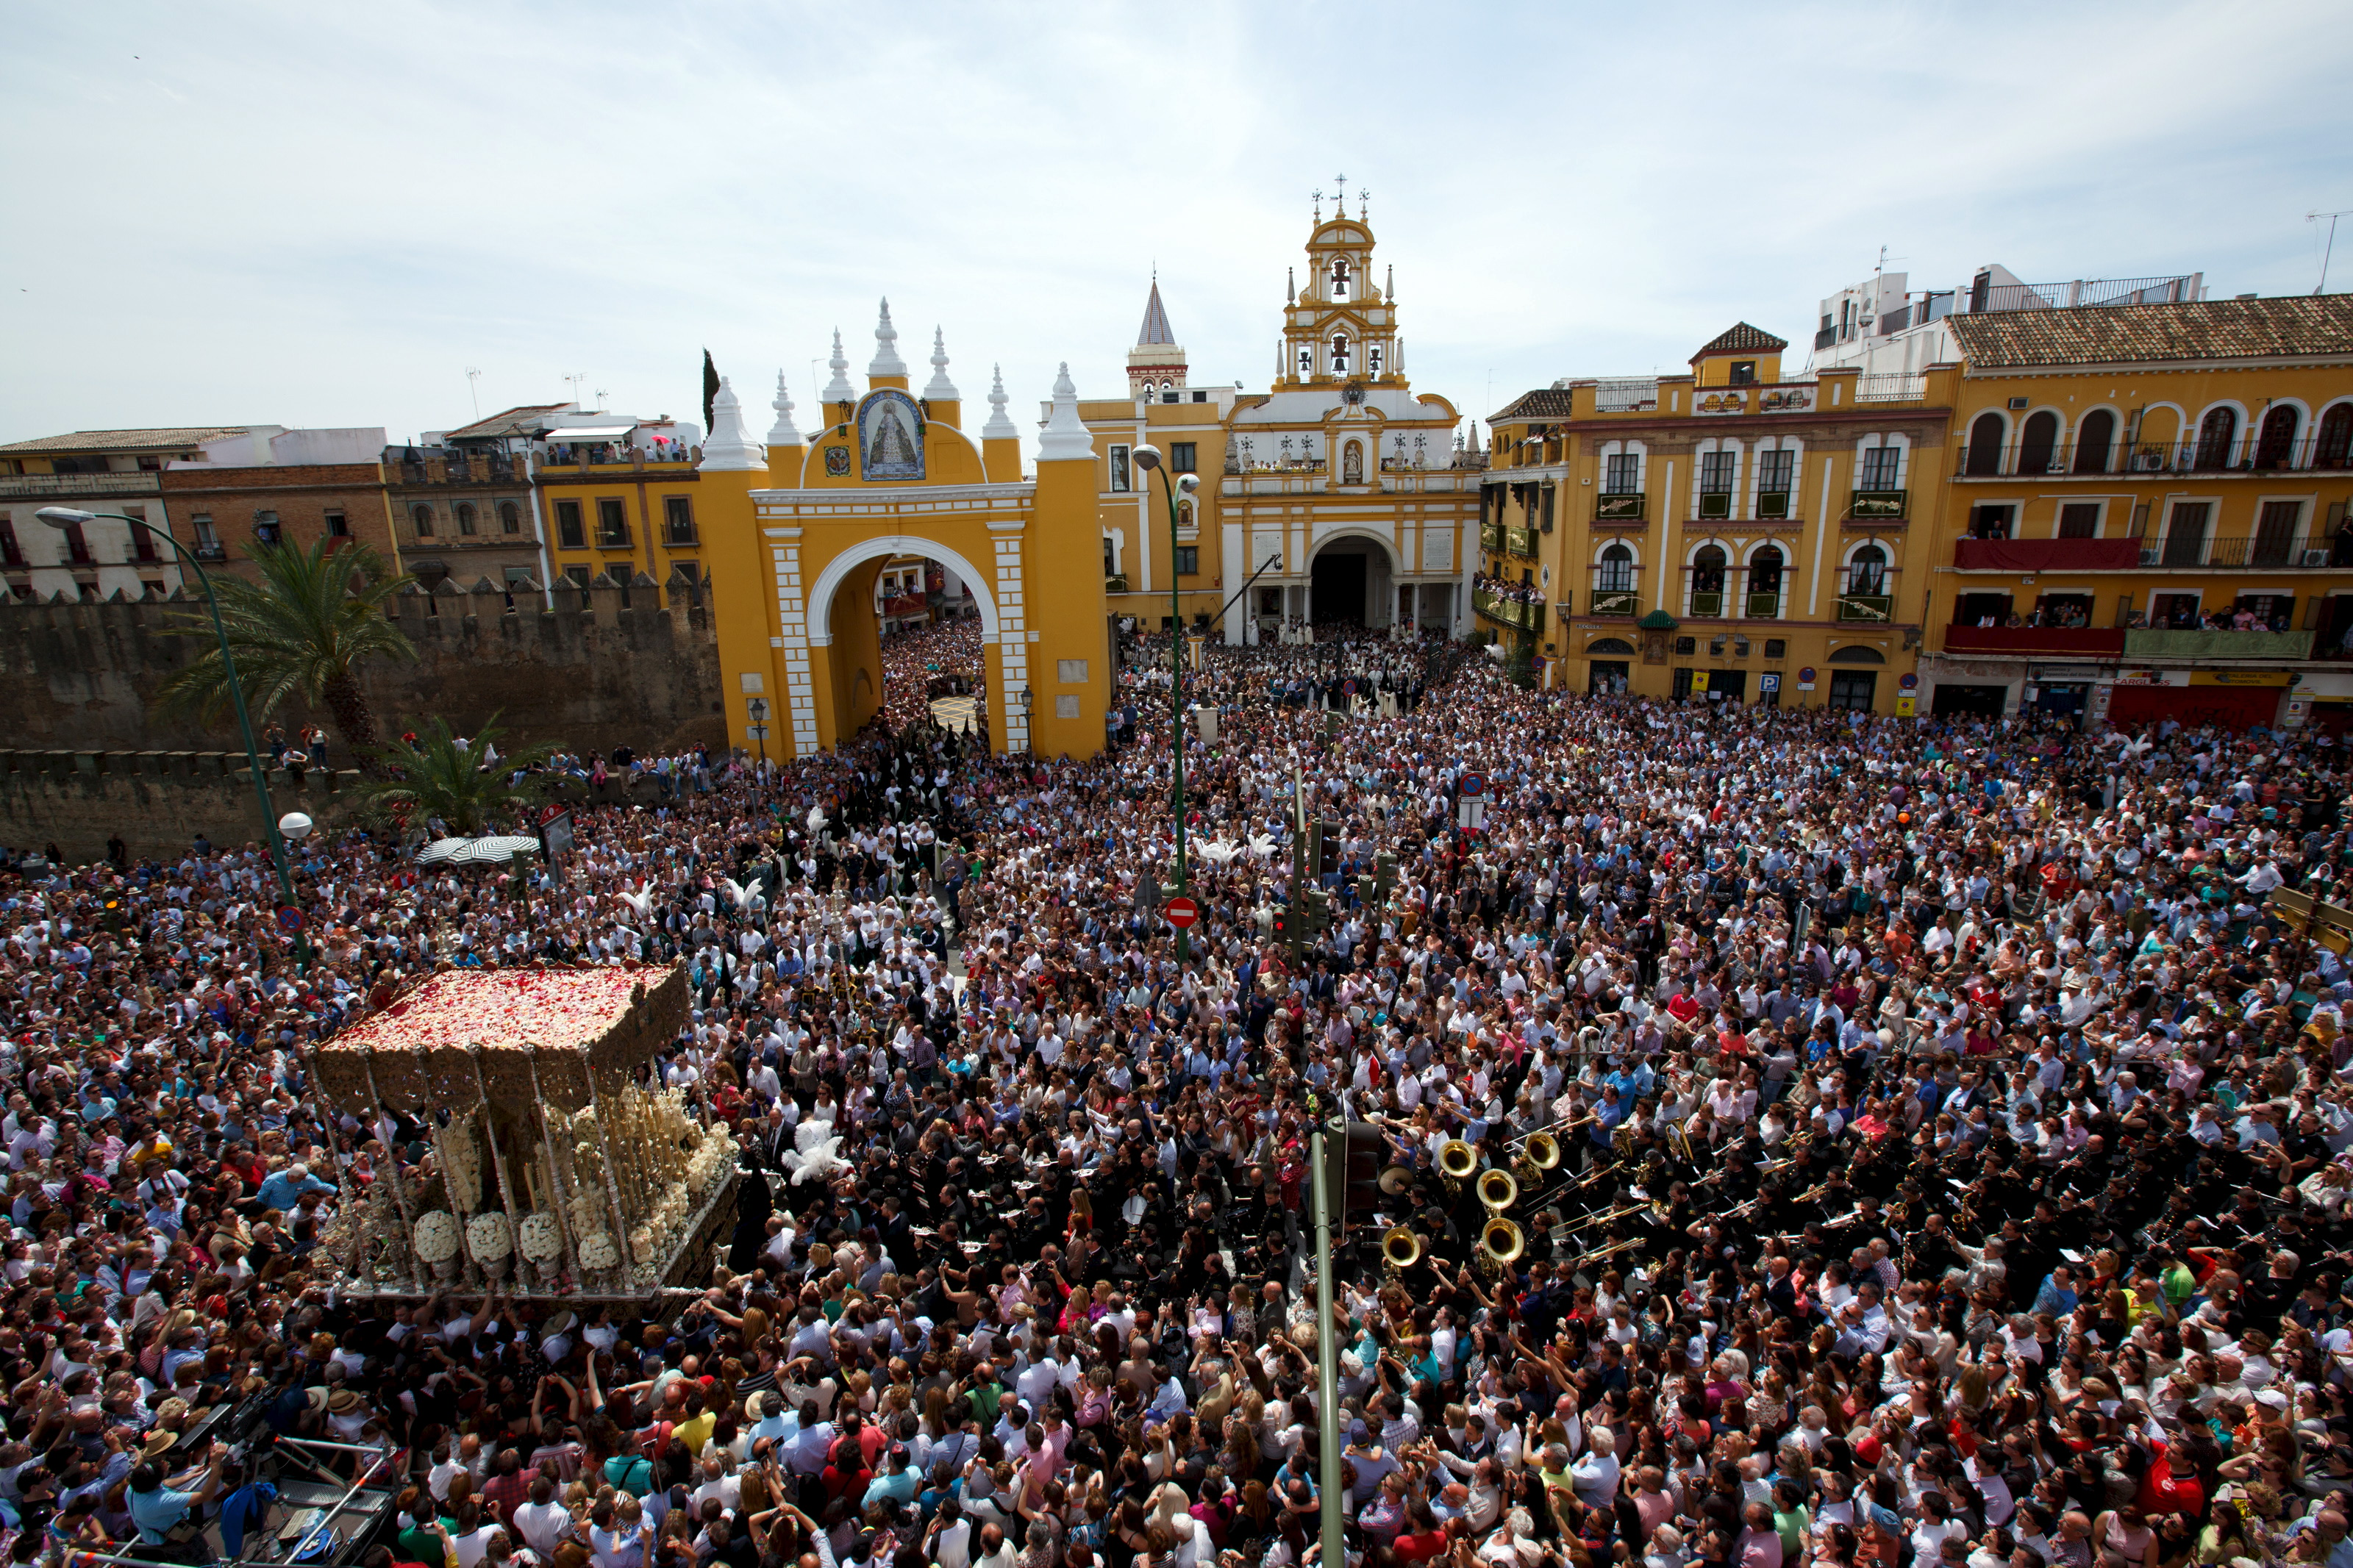 Crowds gather to watch Holy Week processions in Seville, Spain